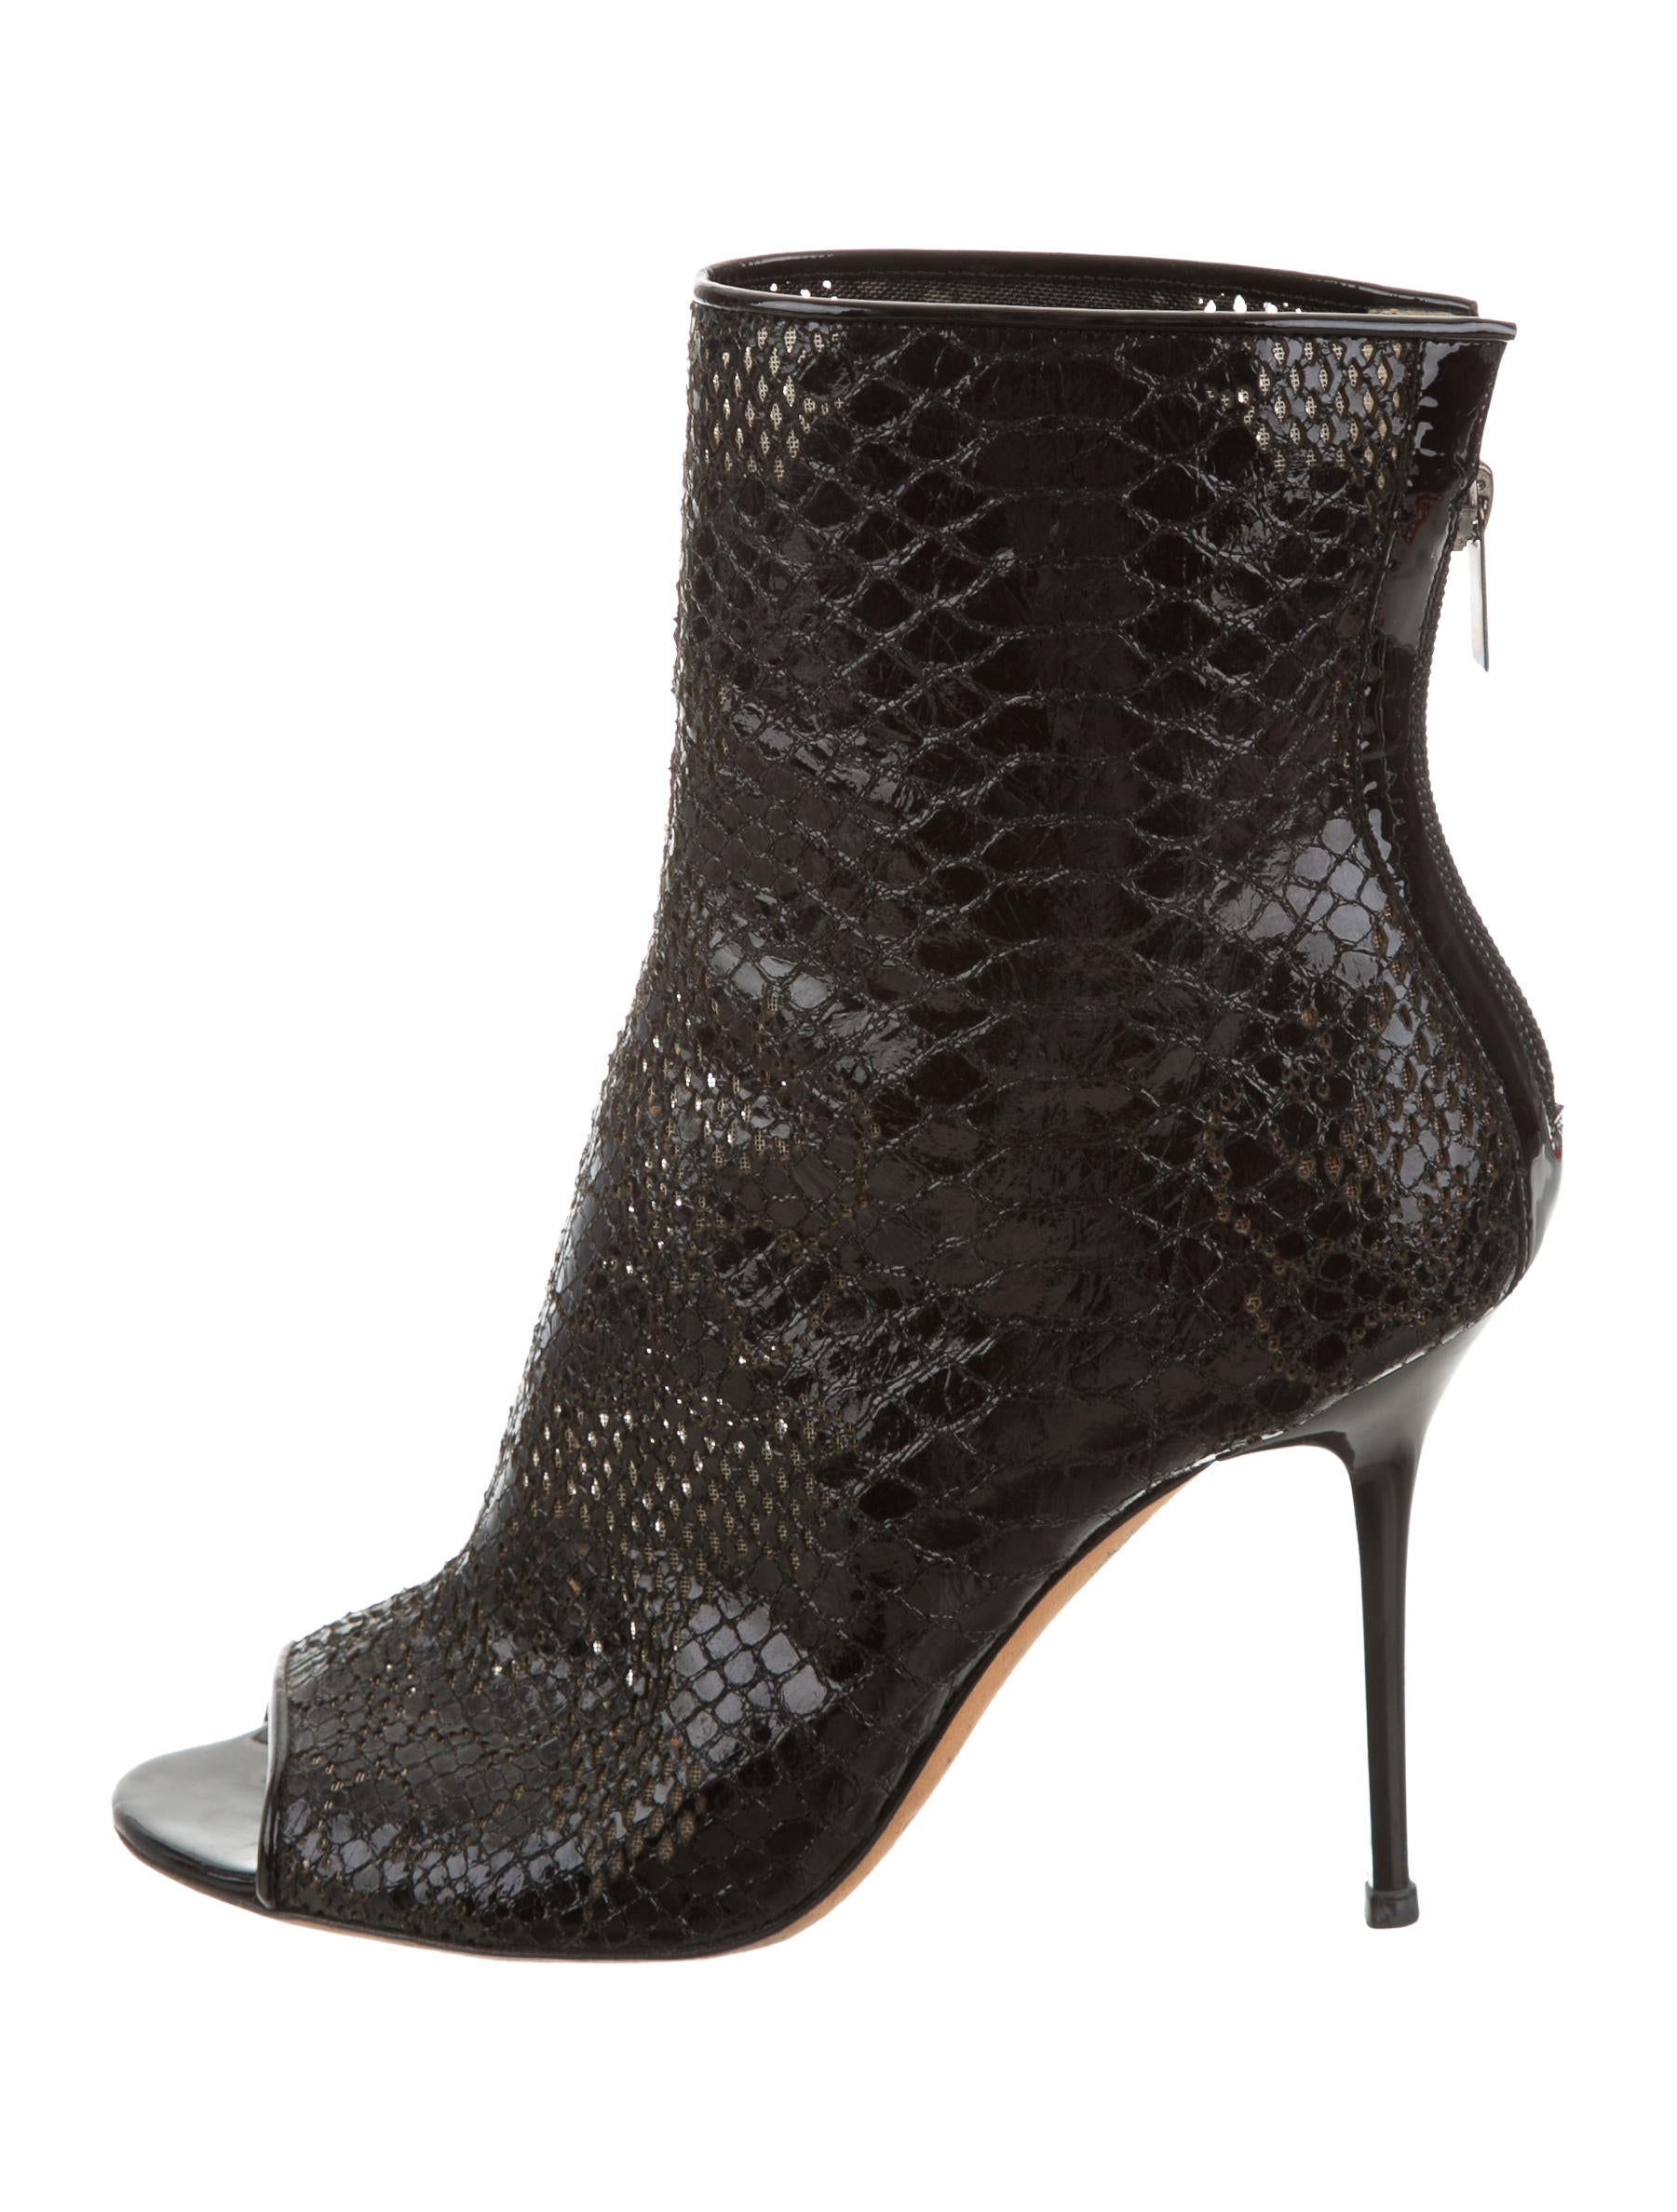 Jimmy Choo Snakeskin Peep Toe Ankle Boots Shoes Jim60782 The Realreal